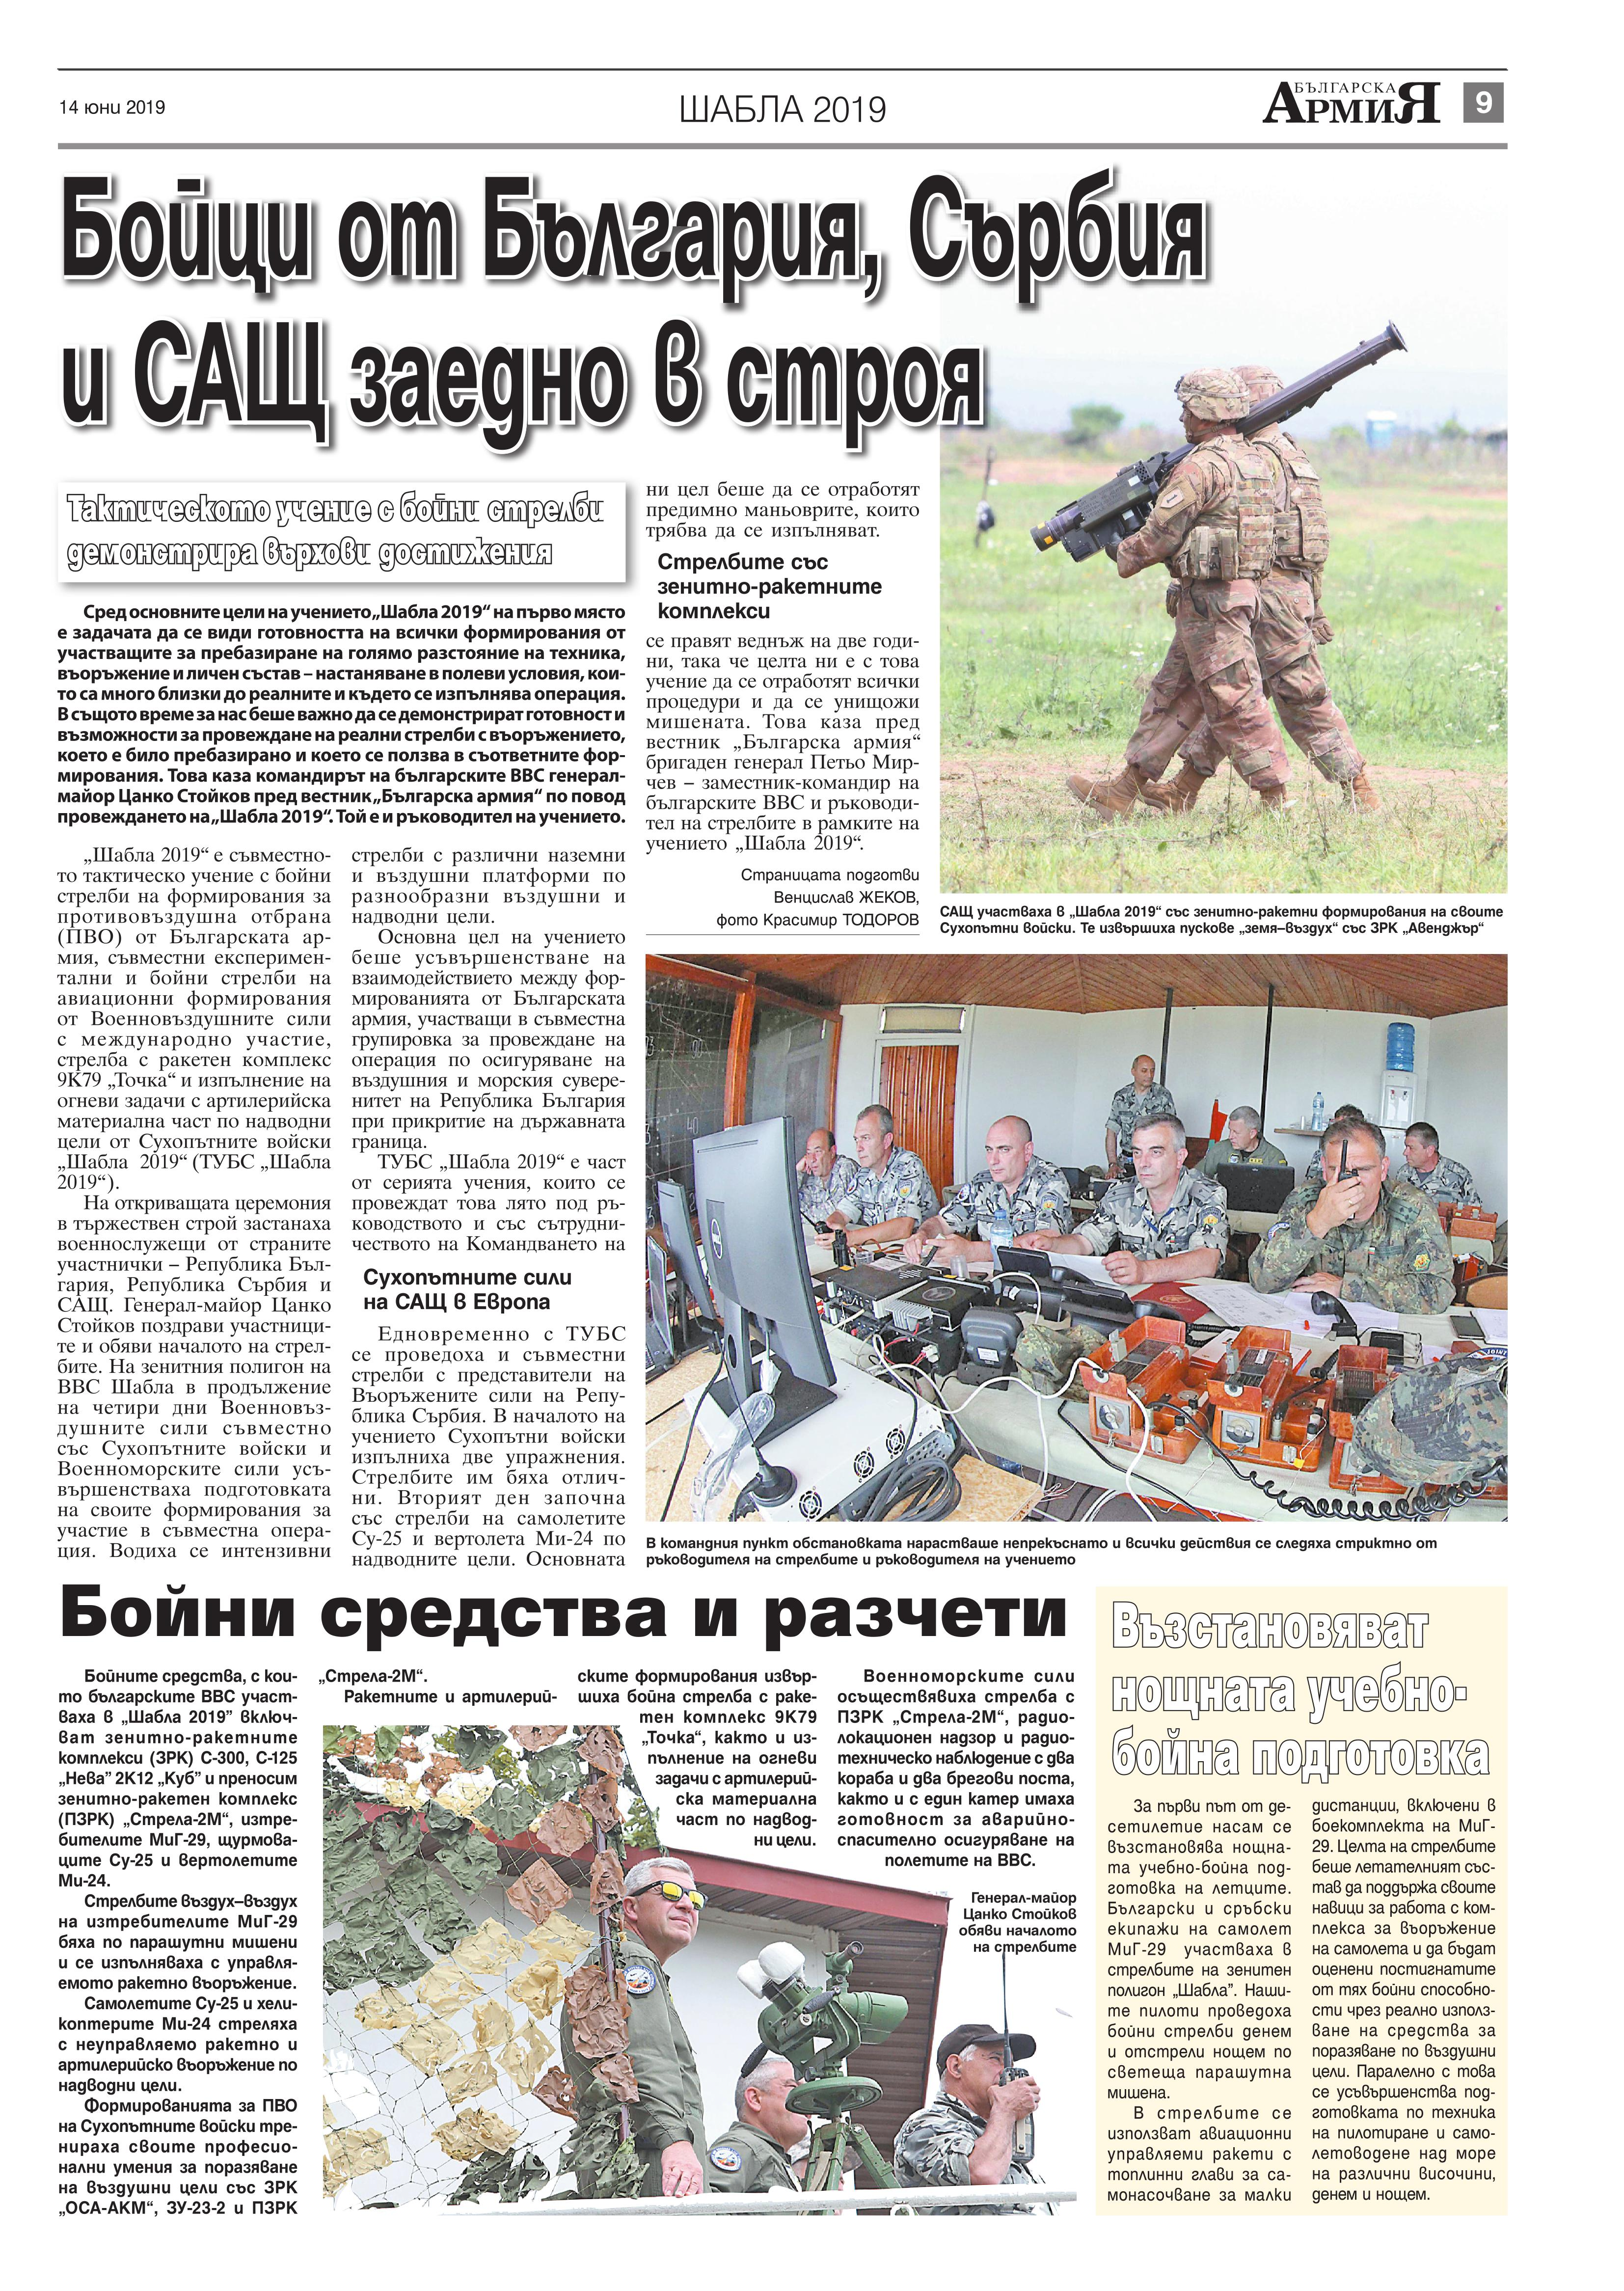 https://armymedia.bg/wp-content/uploads/2015/06/09.page1_-97.jpg